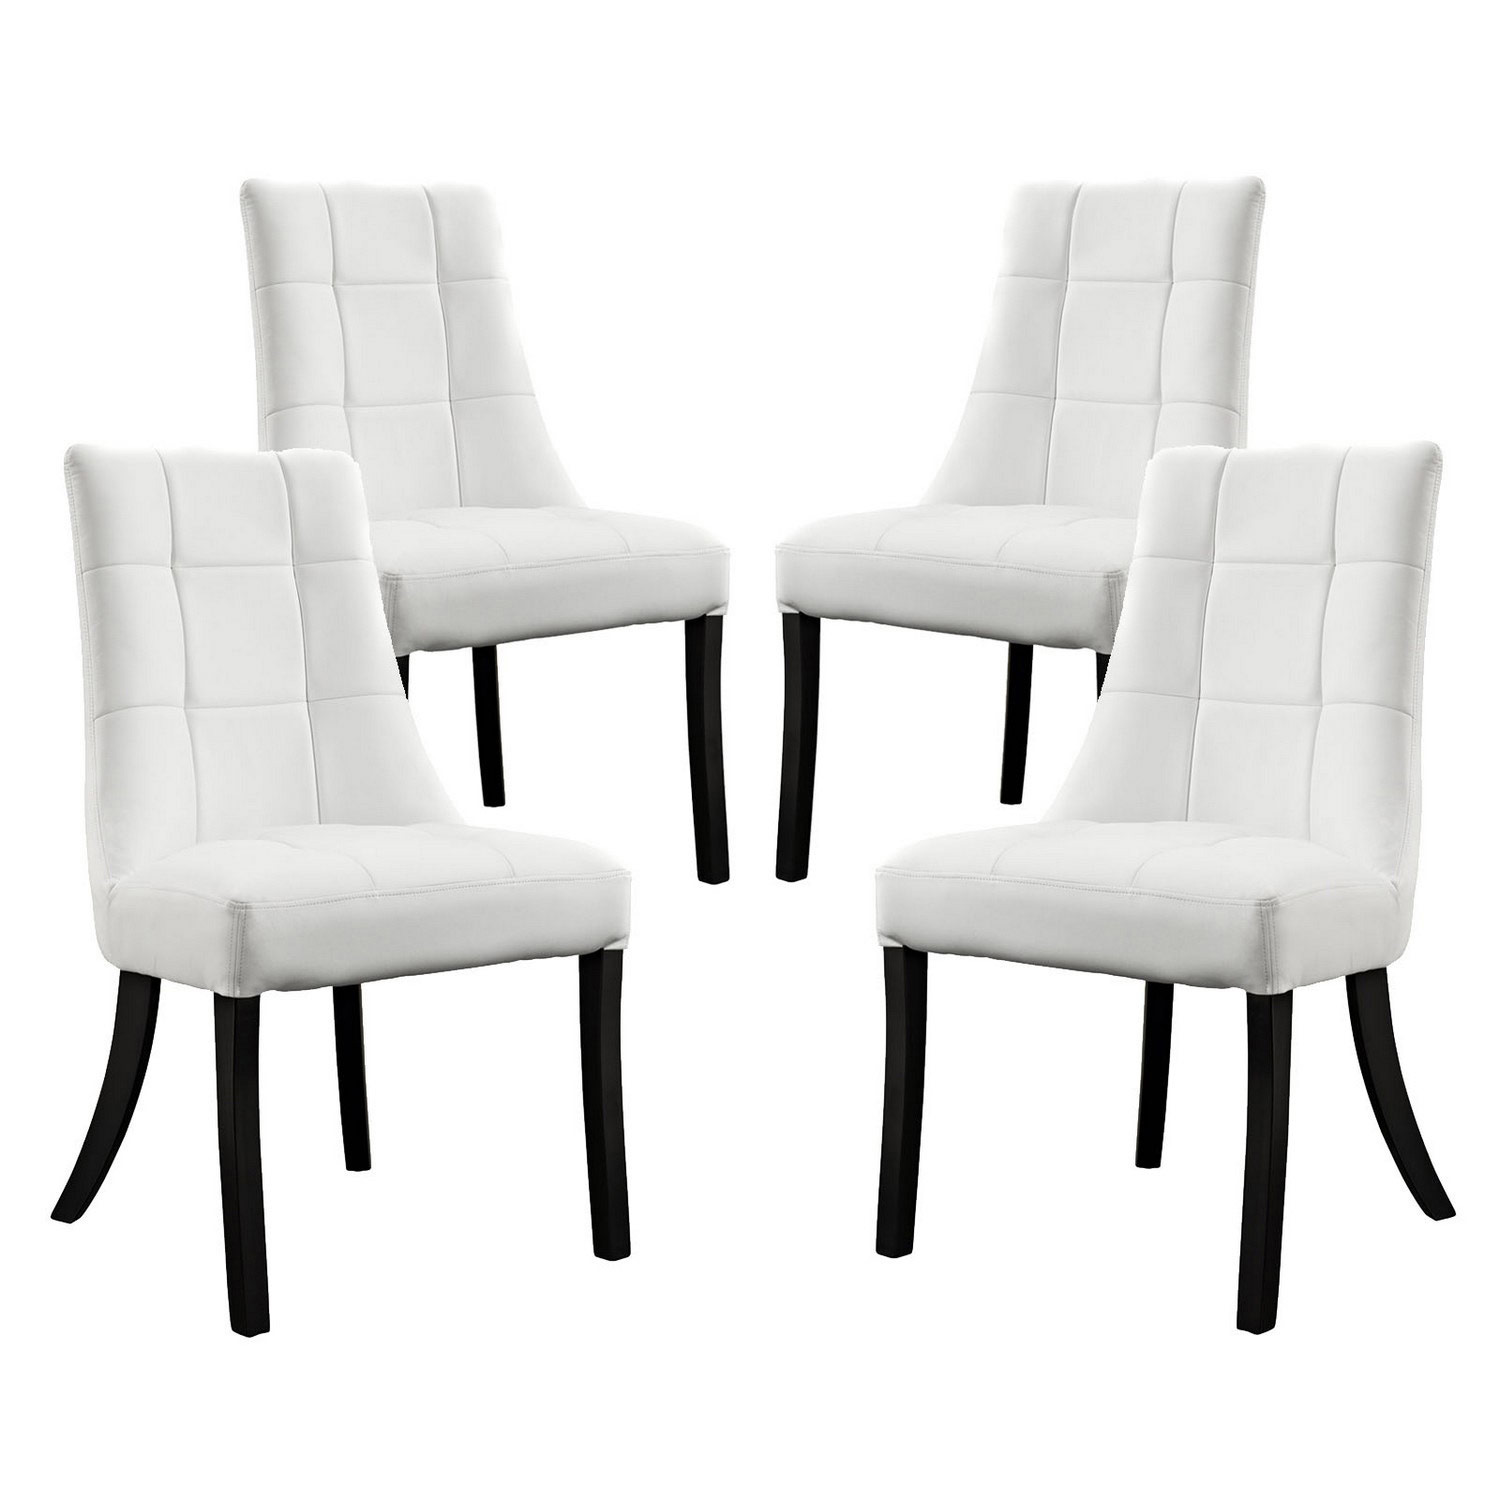 Modway Noblesse Vinyl Dining Chair Set of 4 - White